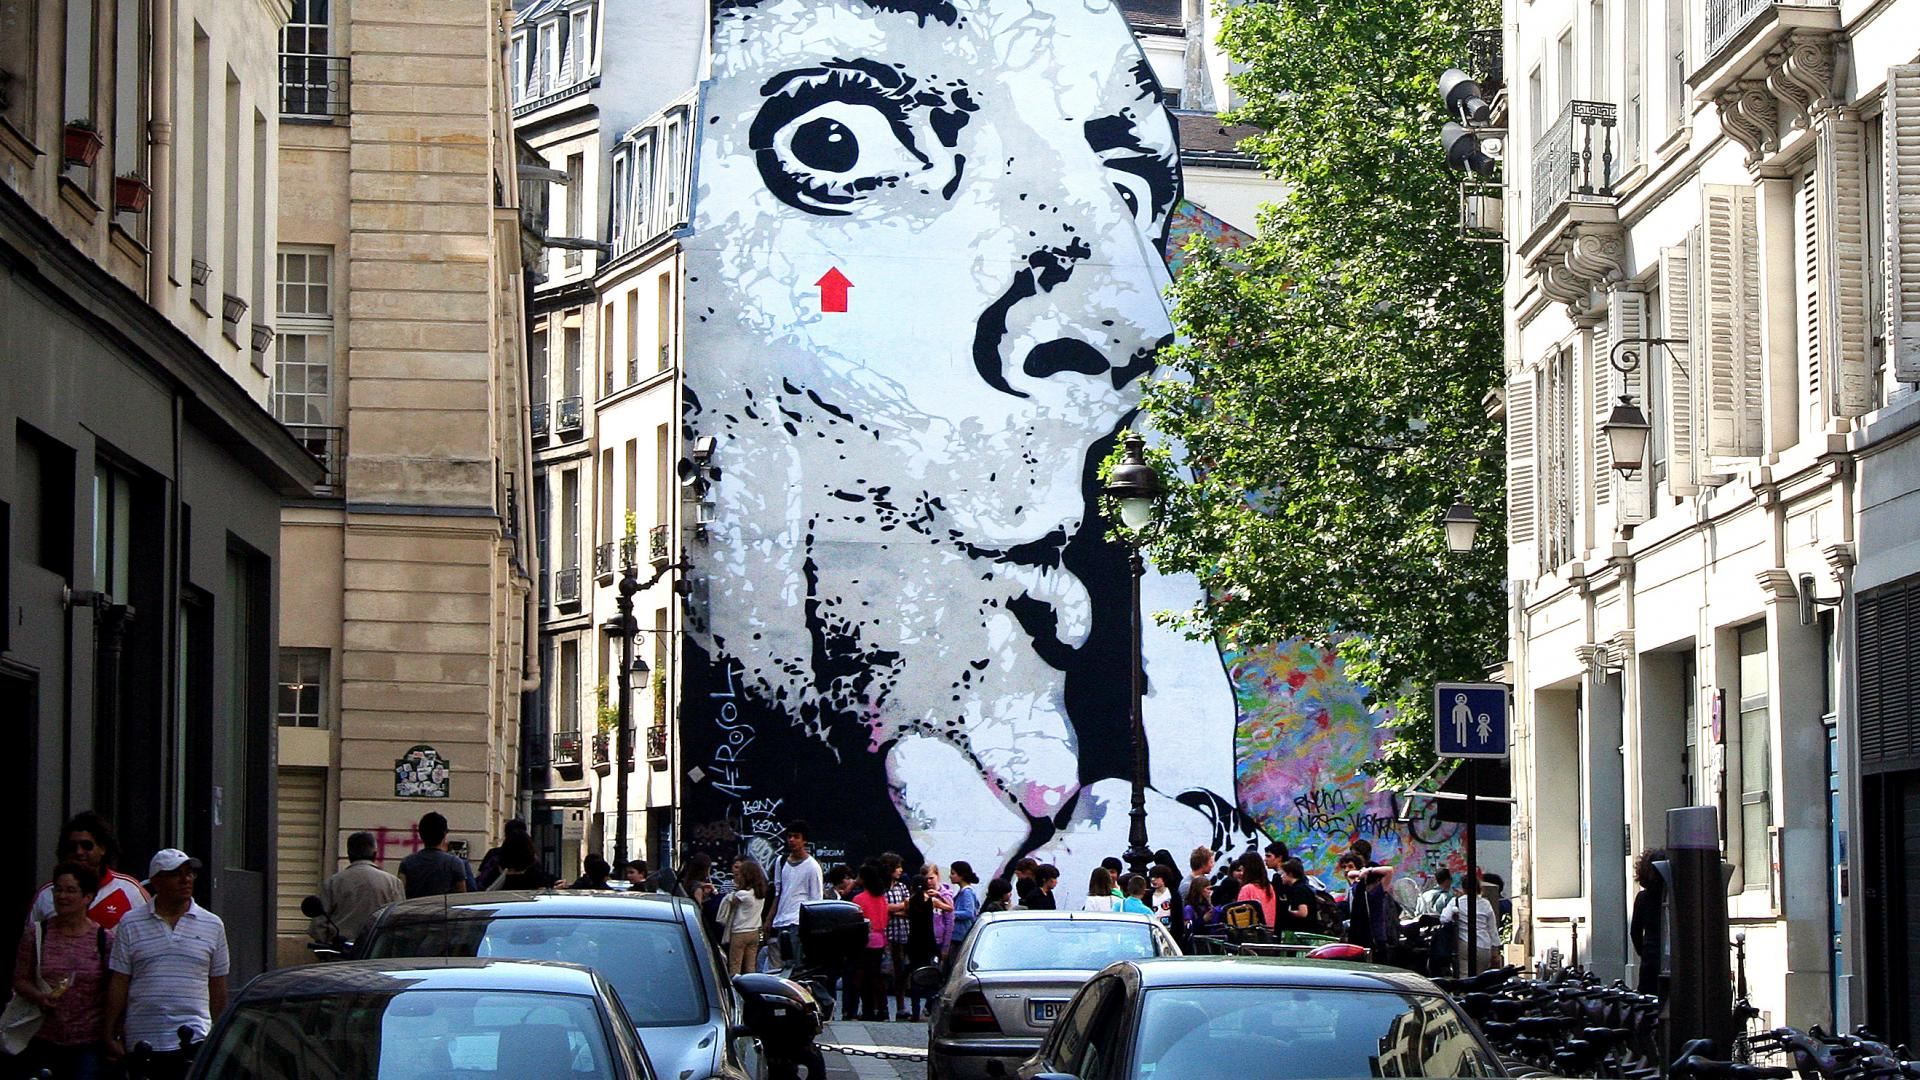 Street art in Paris, France